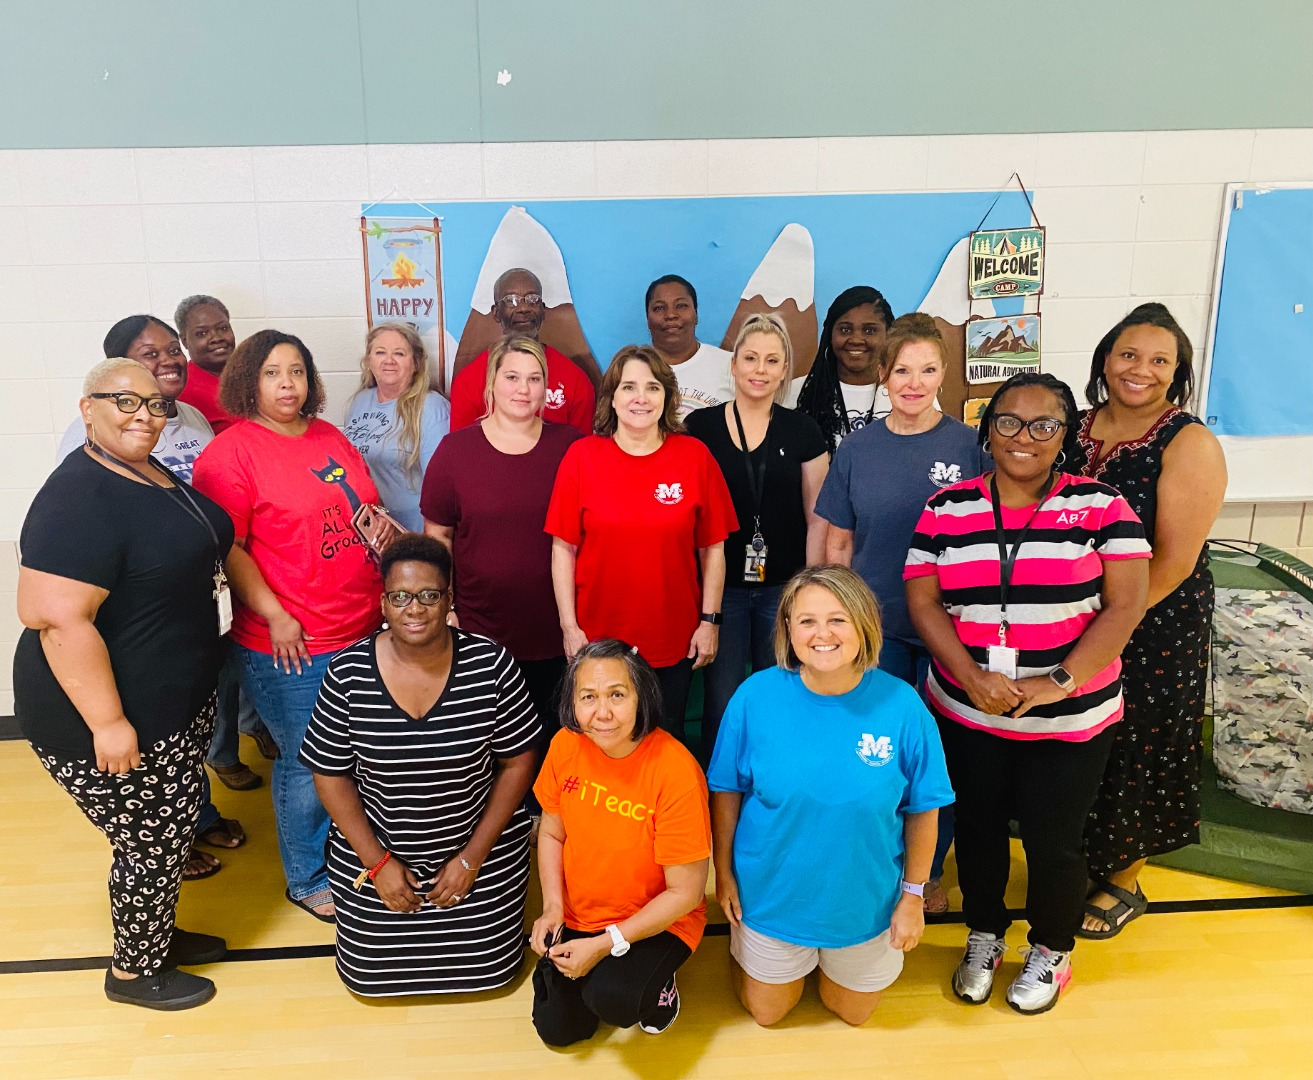 paraprofessionals as a group